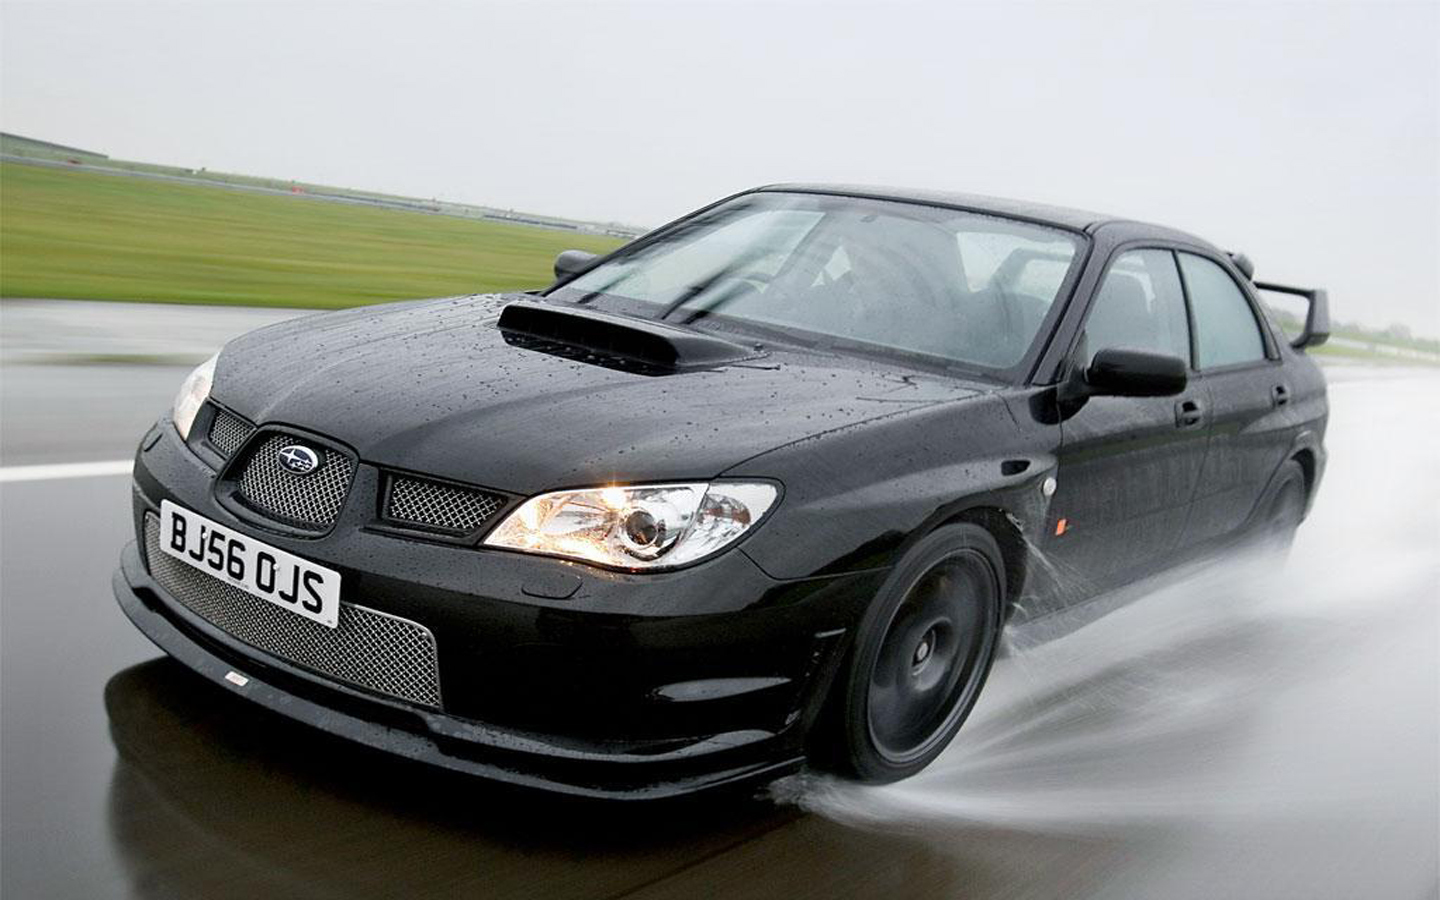 Evo ect Car Wrx HD Wallpaper